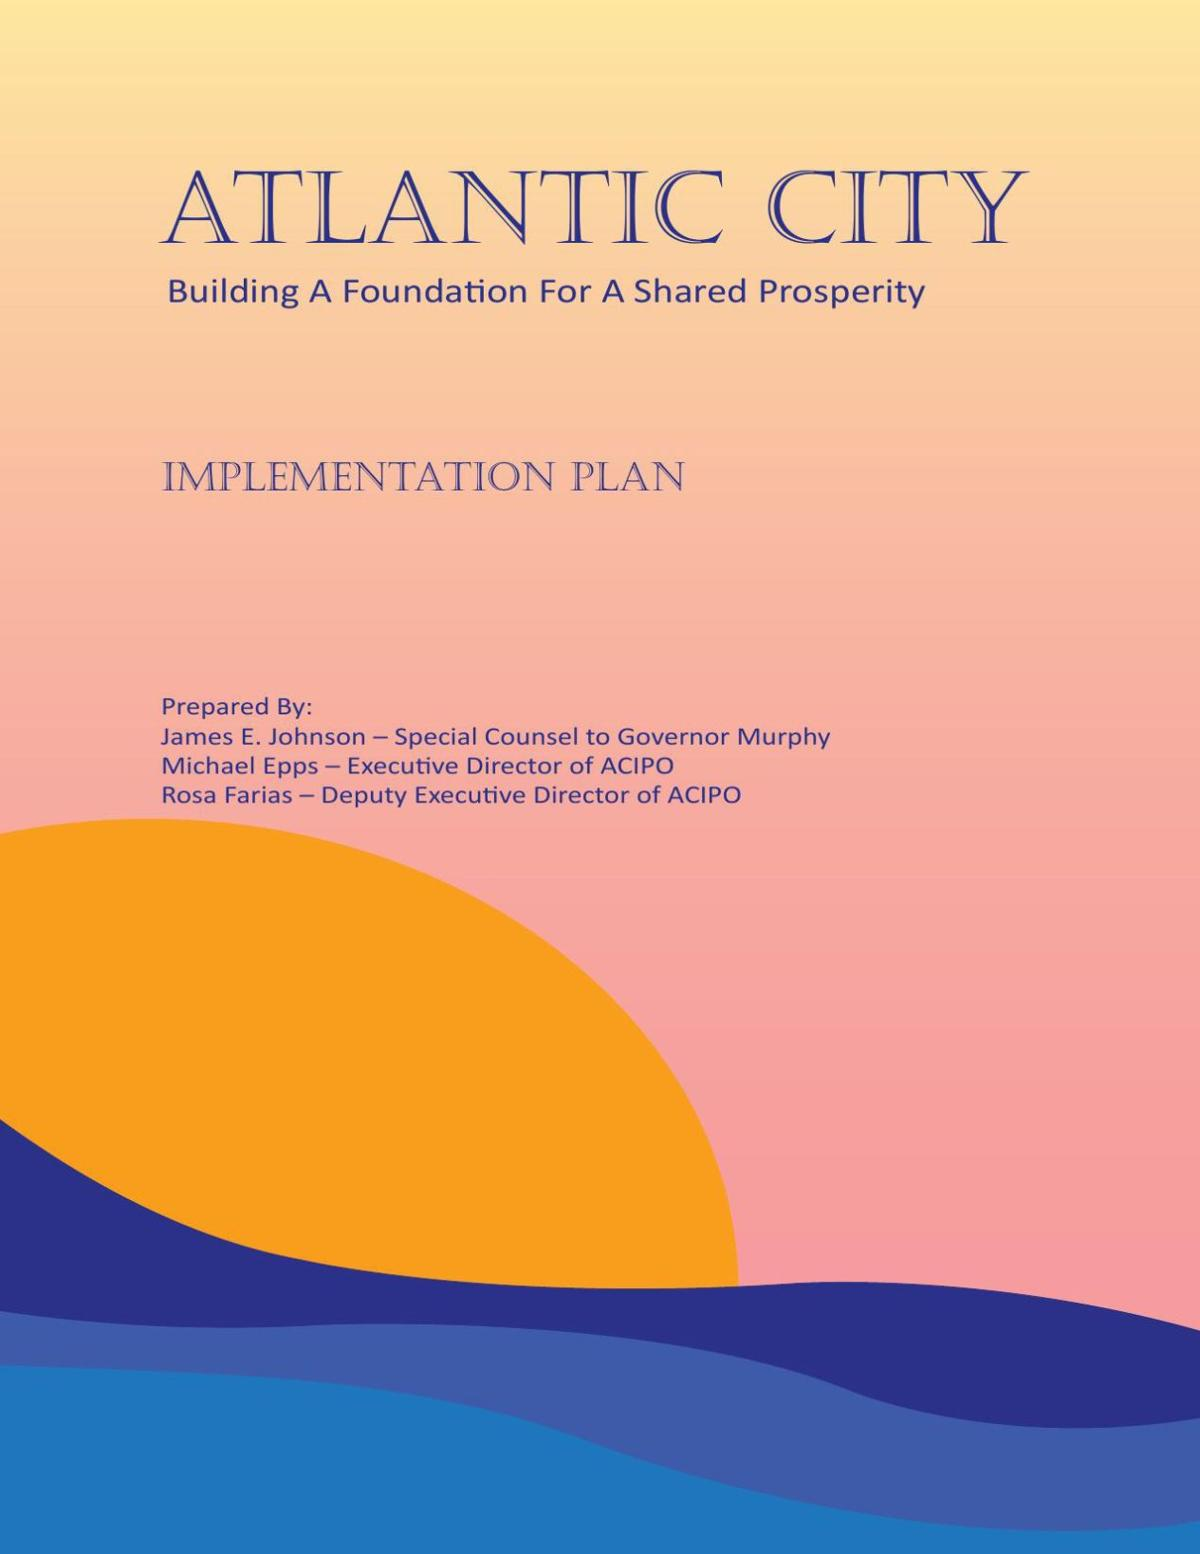 Atlantic City Implementation Plan